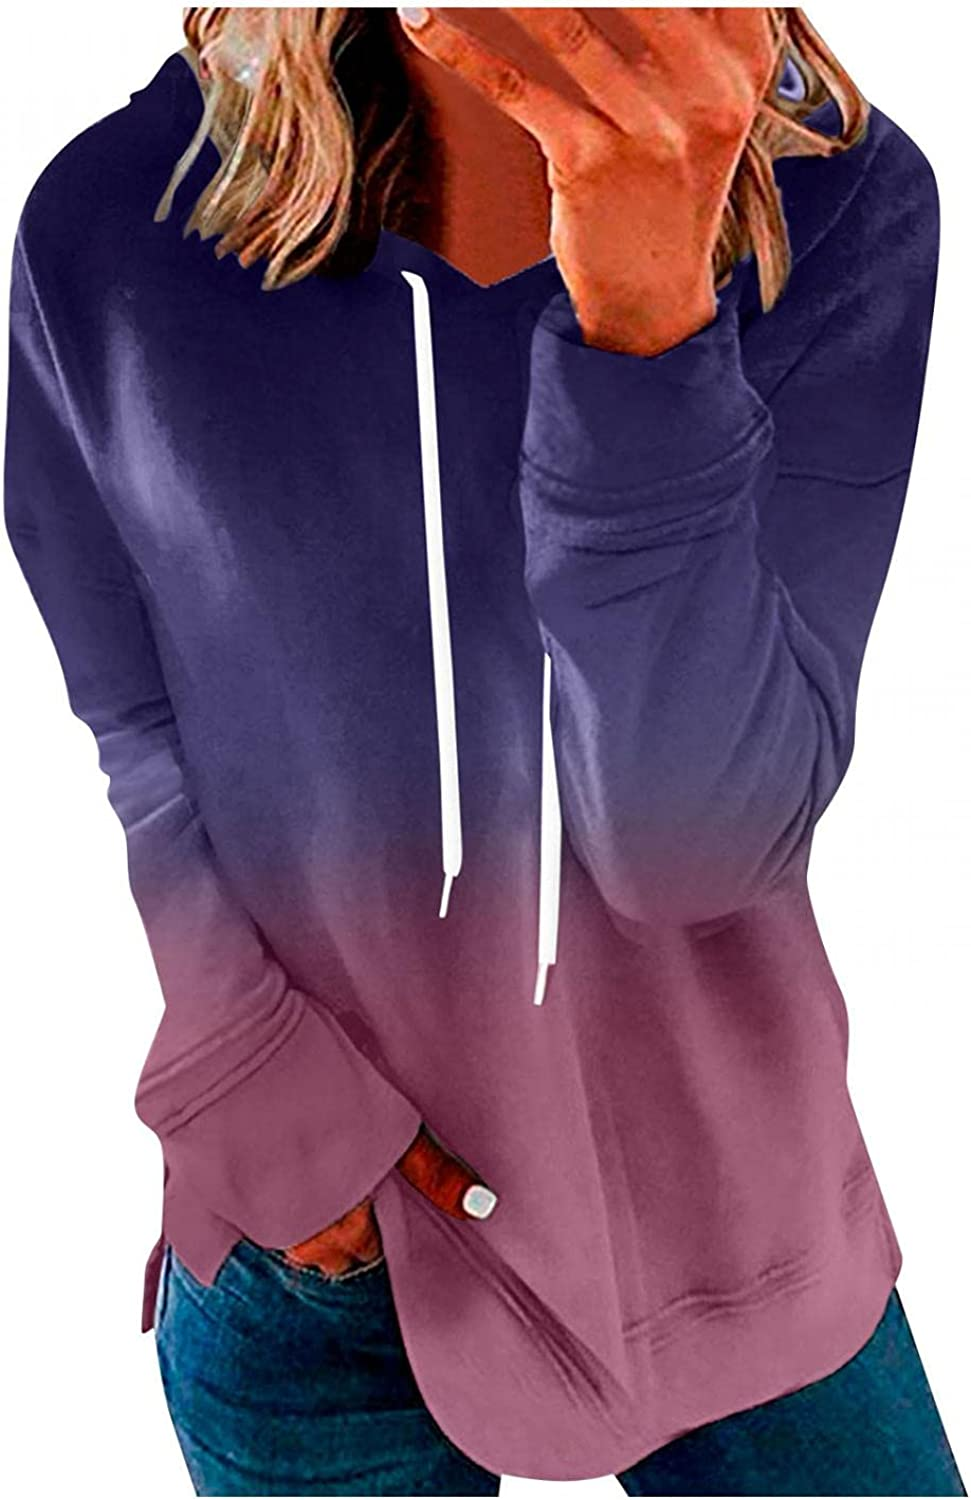 Hoodies Clearance SALE! Limited time! for Women VISLINDU Women's OFFicial site Gradient Sleeve Hooded Long